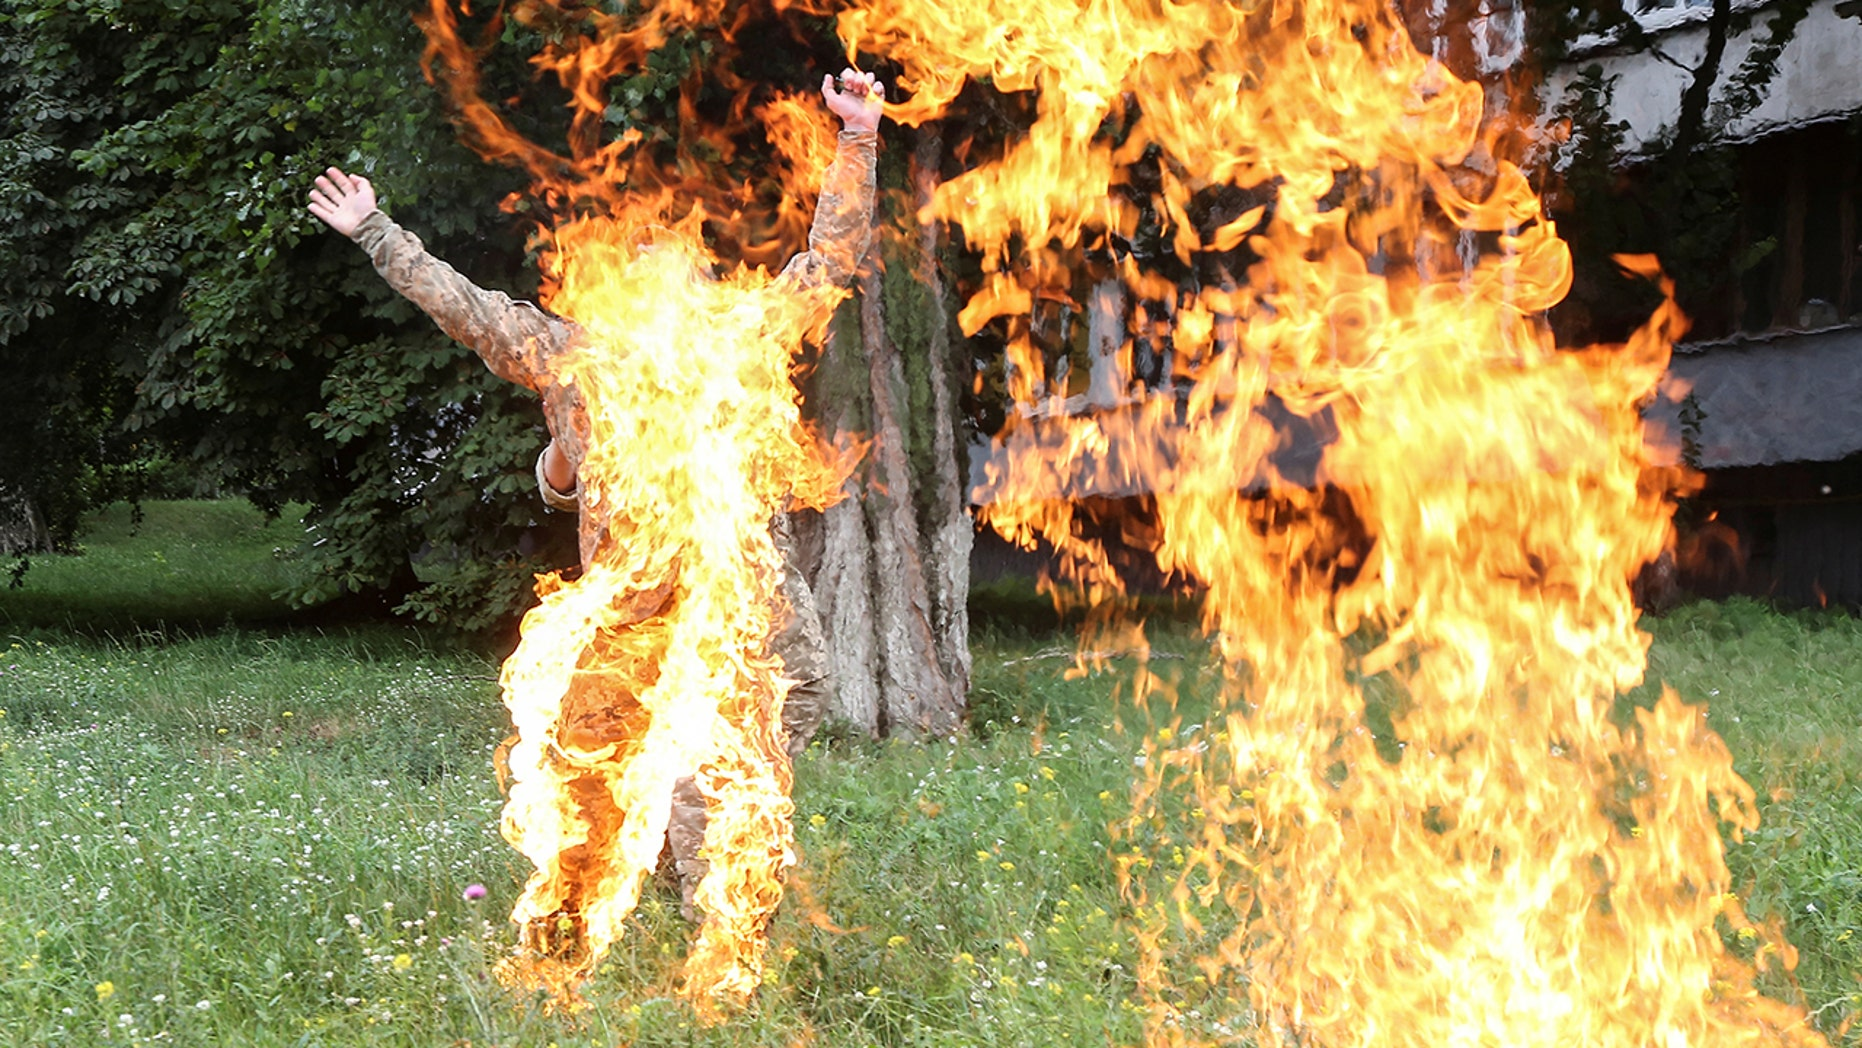 An officer on duty attempts to knock down the flame as former Ukrainian serviceman Serhii Ulianov sets himself on fire.